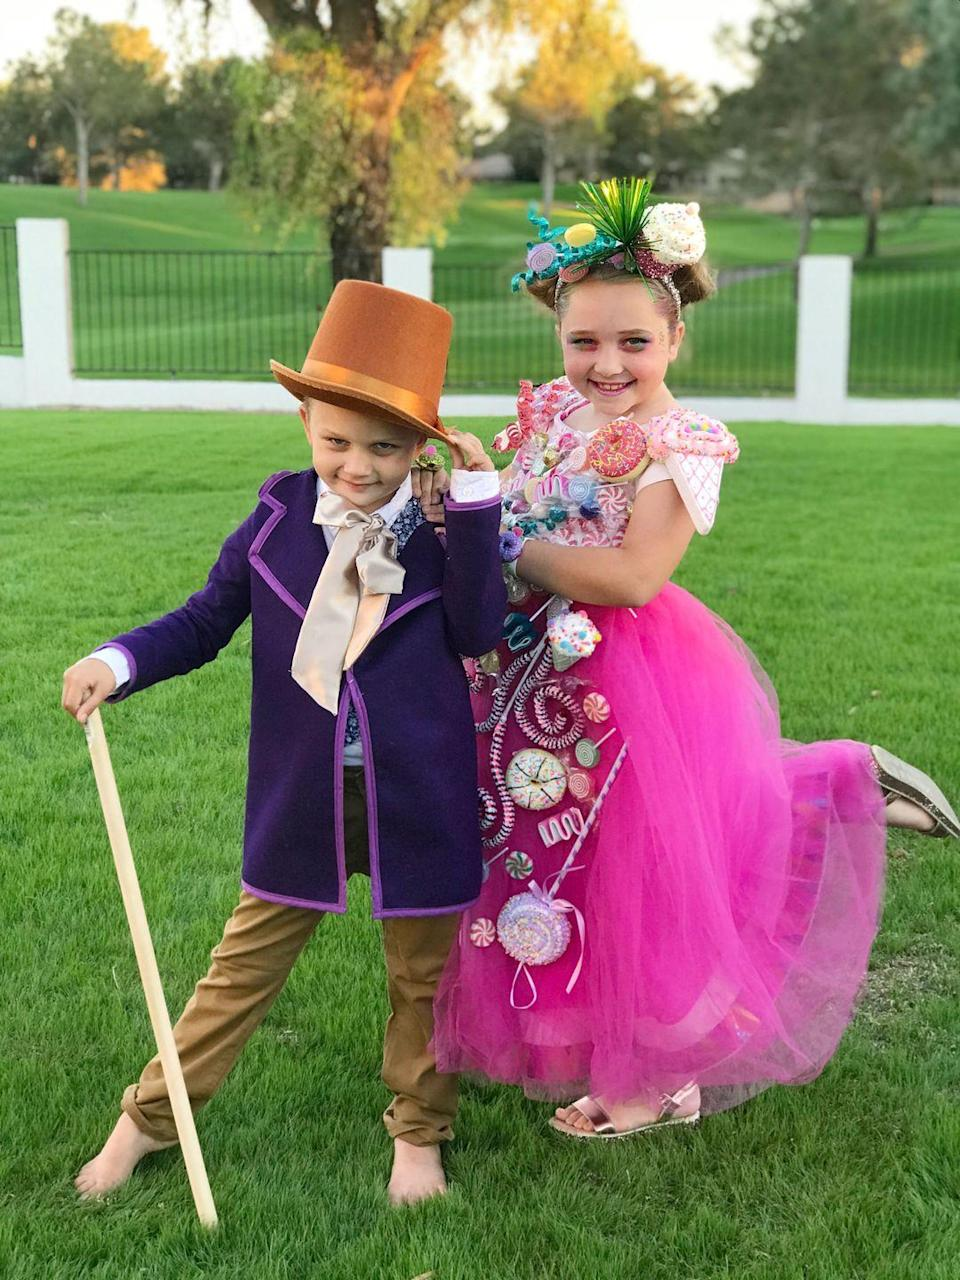 """<p>Willy Wonka meets Candy Land in this sweet siblings costume, which is perfect if you want a general candy-themed costume for your children.</p><p><strong>See more at <a href=""""https://www.instagram.com/p/Bpnp6mplxC2/"""" rel=""""nofollow noopener"""" target=""""_blank"""" data-ylk=""""slk:@ohsojo_"""" class=""""link rapid-noclick-resp"""">@ohsojo_</a>.</strong></p><p><a class=""""link rapid-noclick-resp"""" href=""""https://www.amazon.com/Tigerdoe-Costume-Hats-Accessory-Brown/dp/B072FP9X1R/ref=sr_1_5?tag=syn-yahoo-20&ascsubtag=%5Bartid%7C10050.g.28698768%5Bsrc%7Cyahoo-us"""" rel=""""nofollow noopener"""" target=""""_blank"""" data-ylk=""""slk:SHOP BROWN TOP HATS"""">SHOP BROWN TOP HATS</a> </p>"""